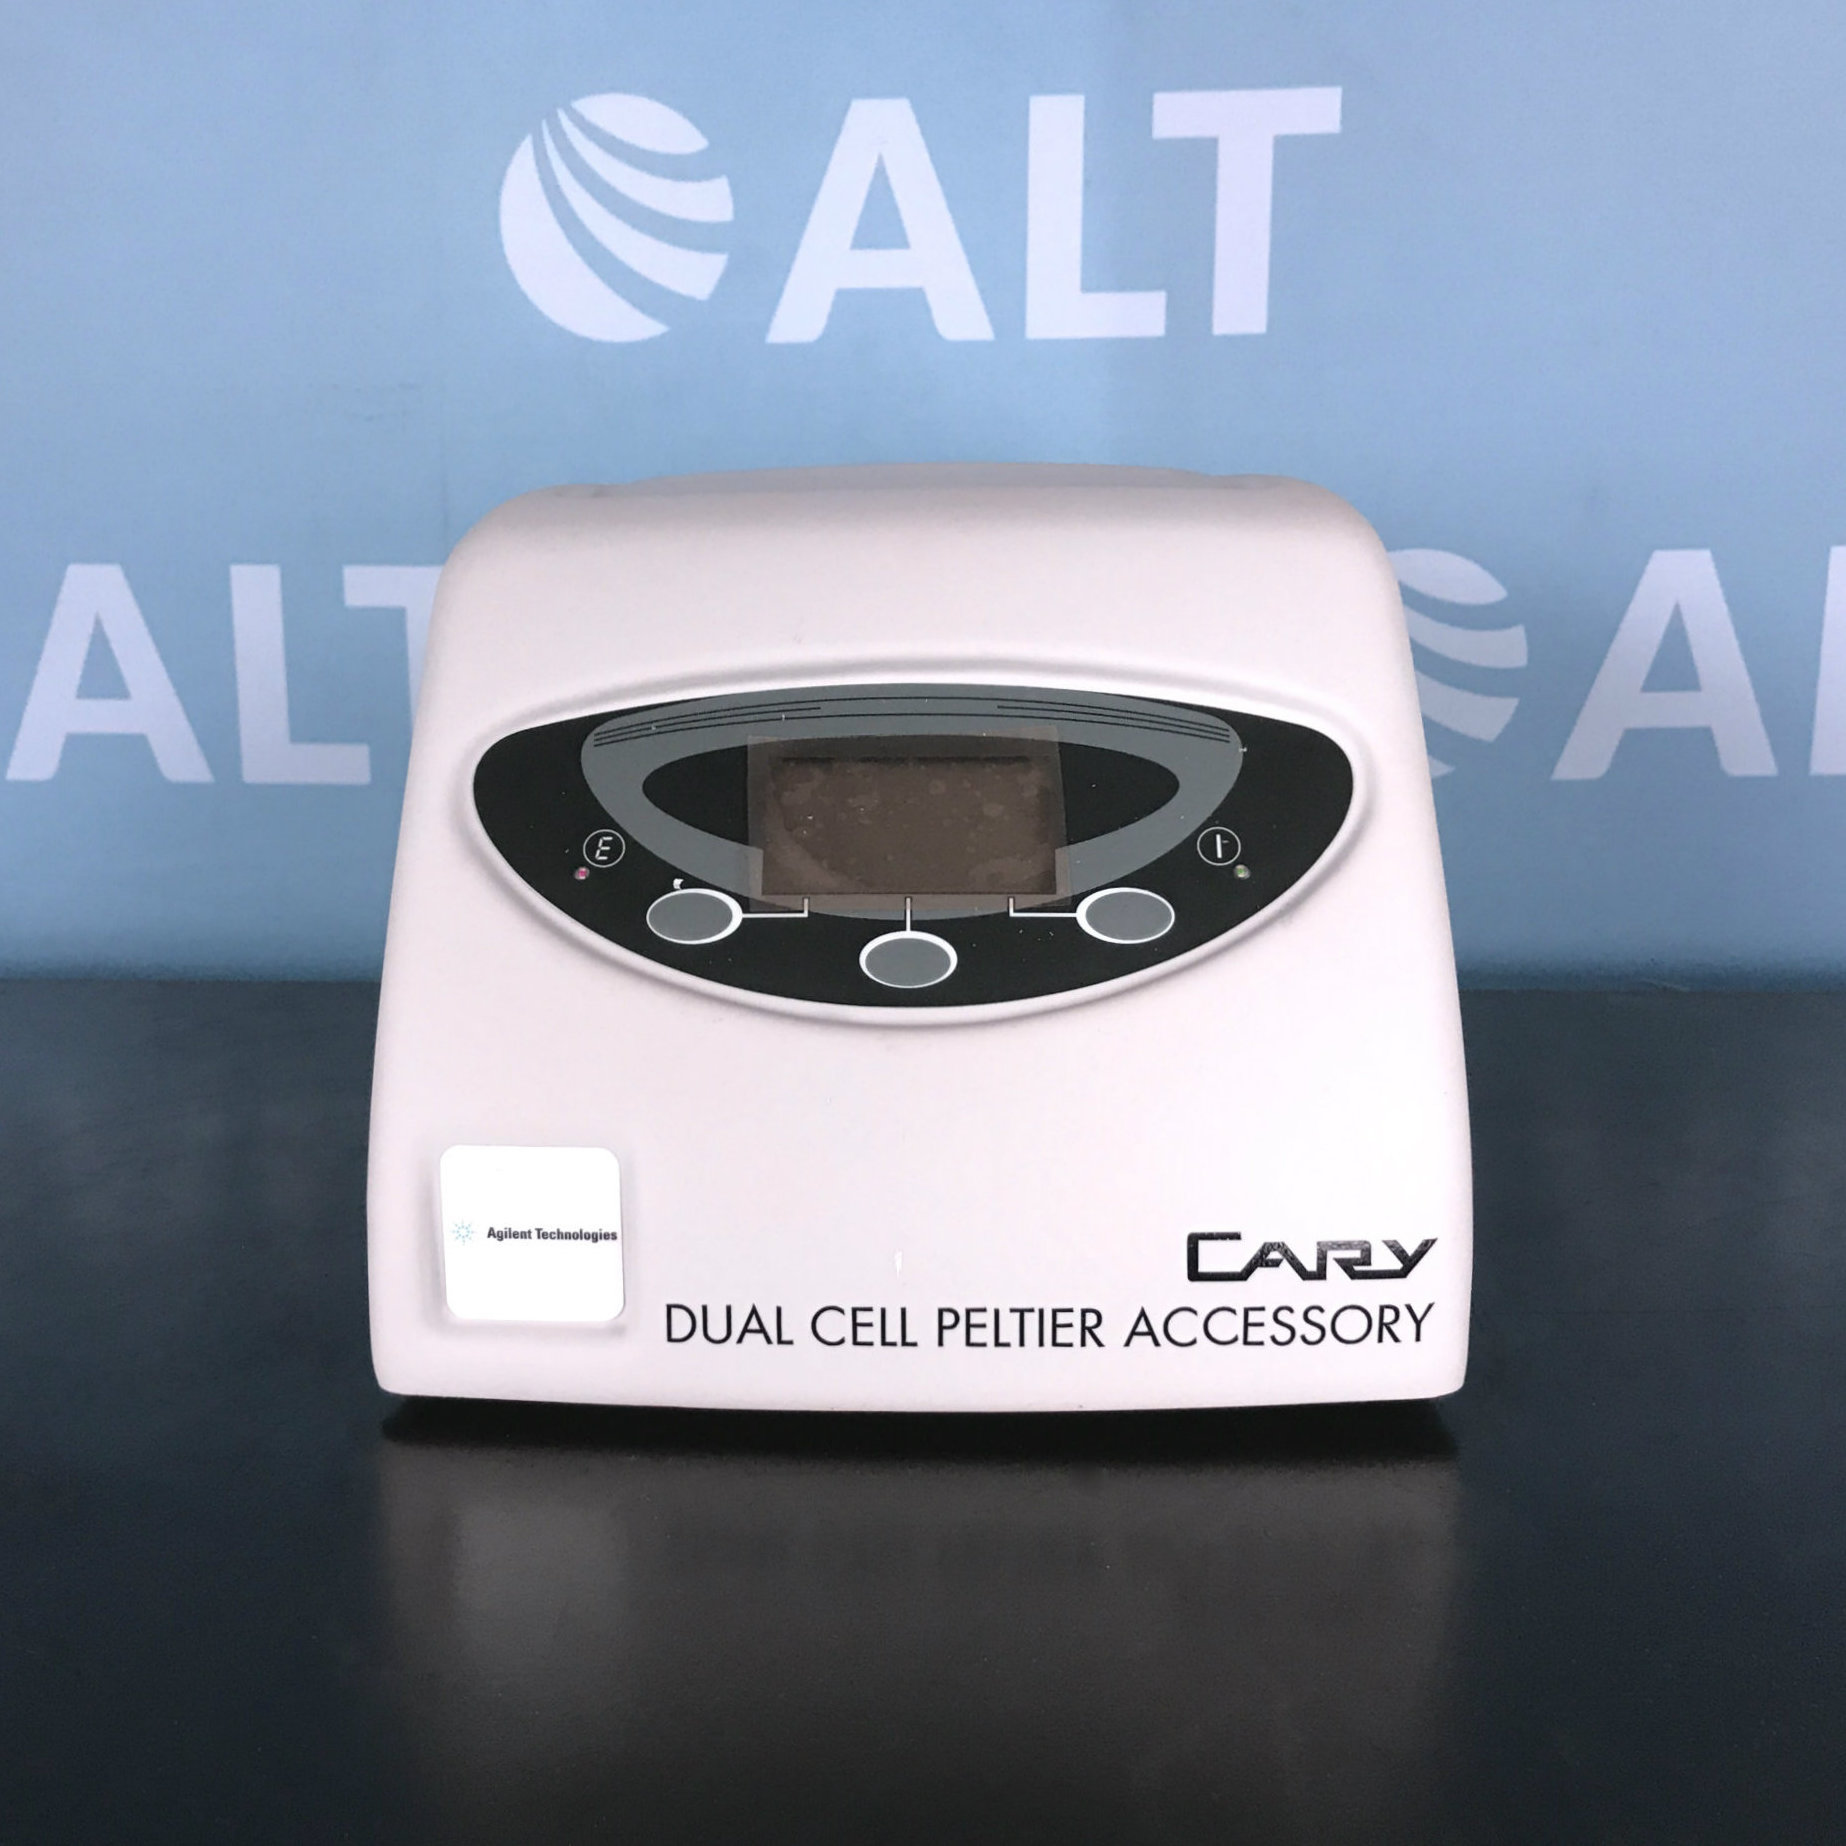 Agilent Technologies Cary Dual Cell Peltier Accessory SPV-1X1 Image